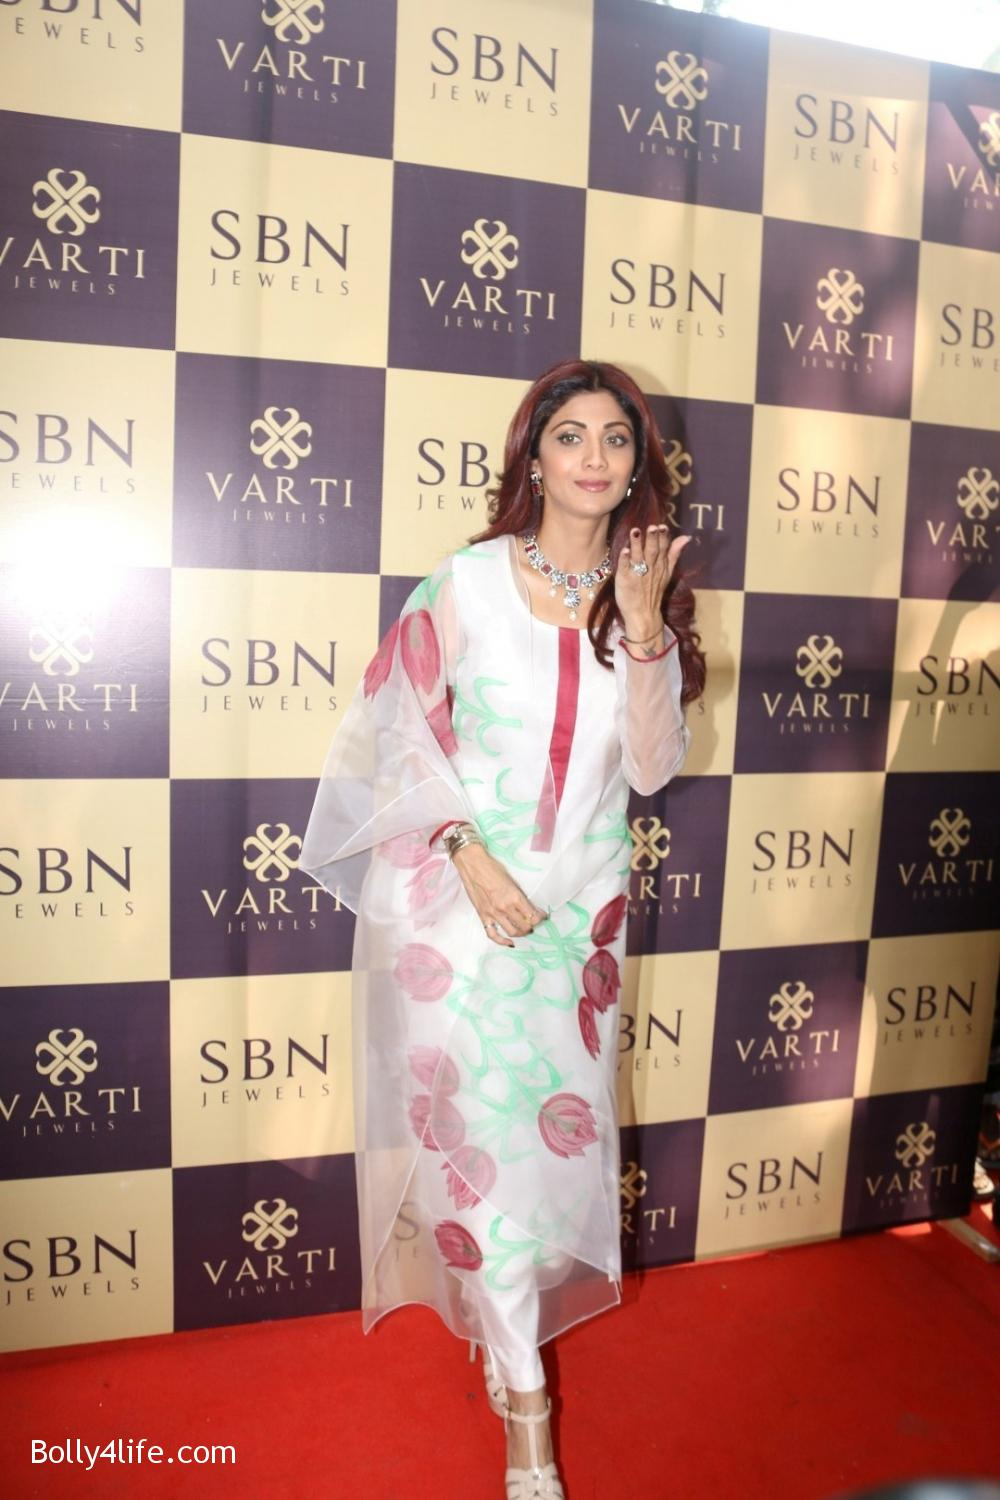 Shilpa-Shetty-inaugurates-jewellery-showroom-of-Varti-Jewells-8.jpg